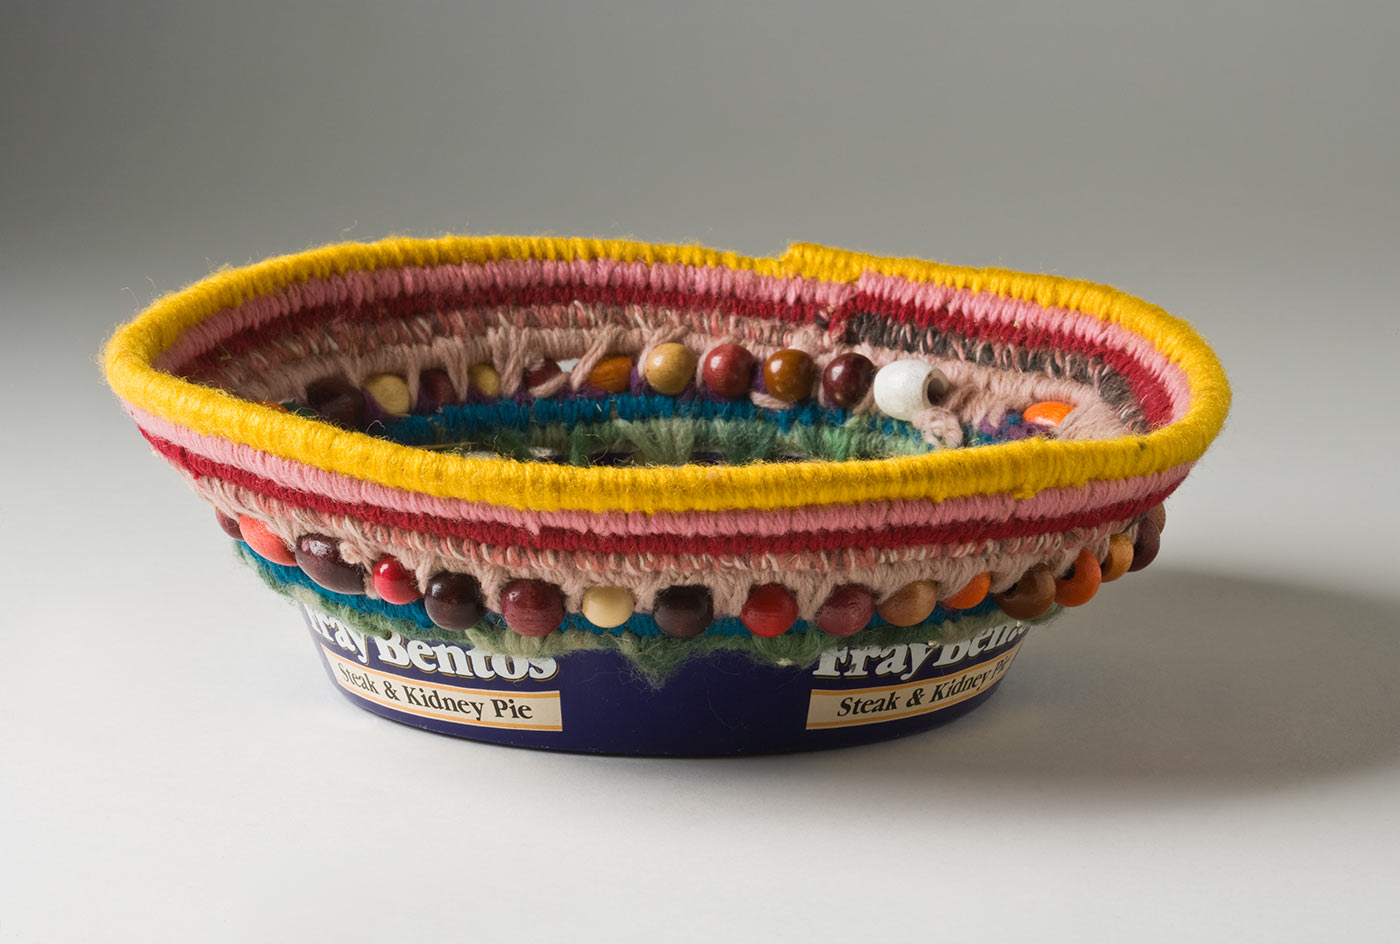 A circular coiled striped yarn basket over plant fibre with bead decoration, which opens out towards the top and has a metal base. The base of the basket is a blue and white coloured metal tin with burn marks to the bottom which includes the text 'Fray Bentos / Steak and Kidney Pie'. Yarn is used to attach the base to the top section through holes that have been punched in the tin. The basket has a stripe of yellow at the top edge followed by pink, dark pink, brown and mid pink, peach, teal and light green. Multicoloured oval and round wood beads are attached within the yarn coils at the top of the metal base. - click to view larger image